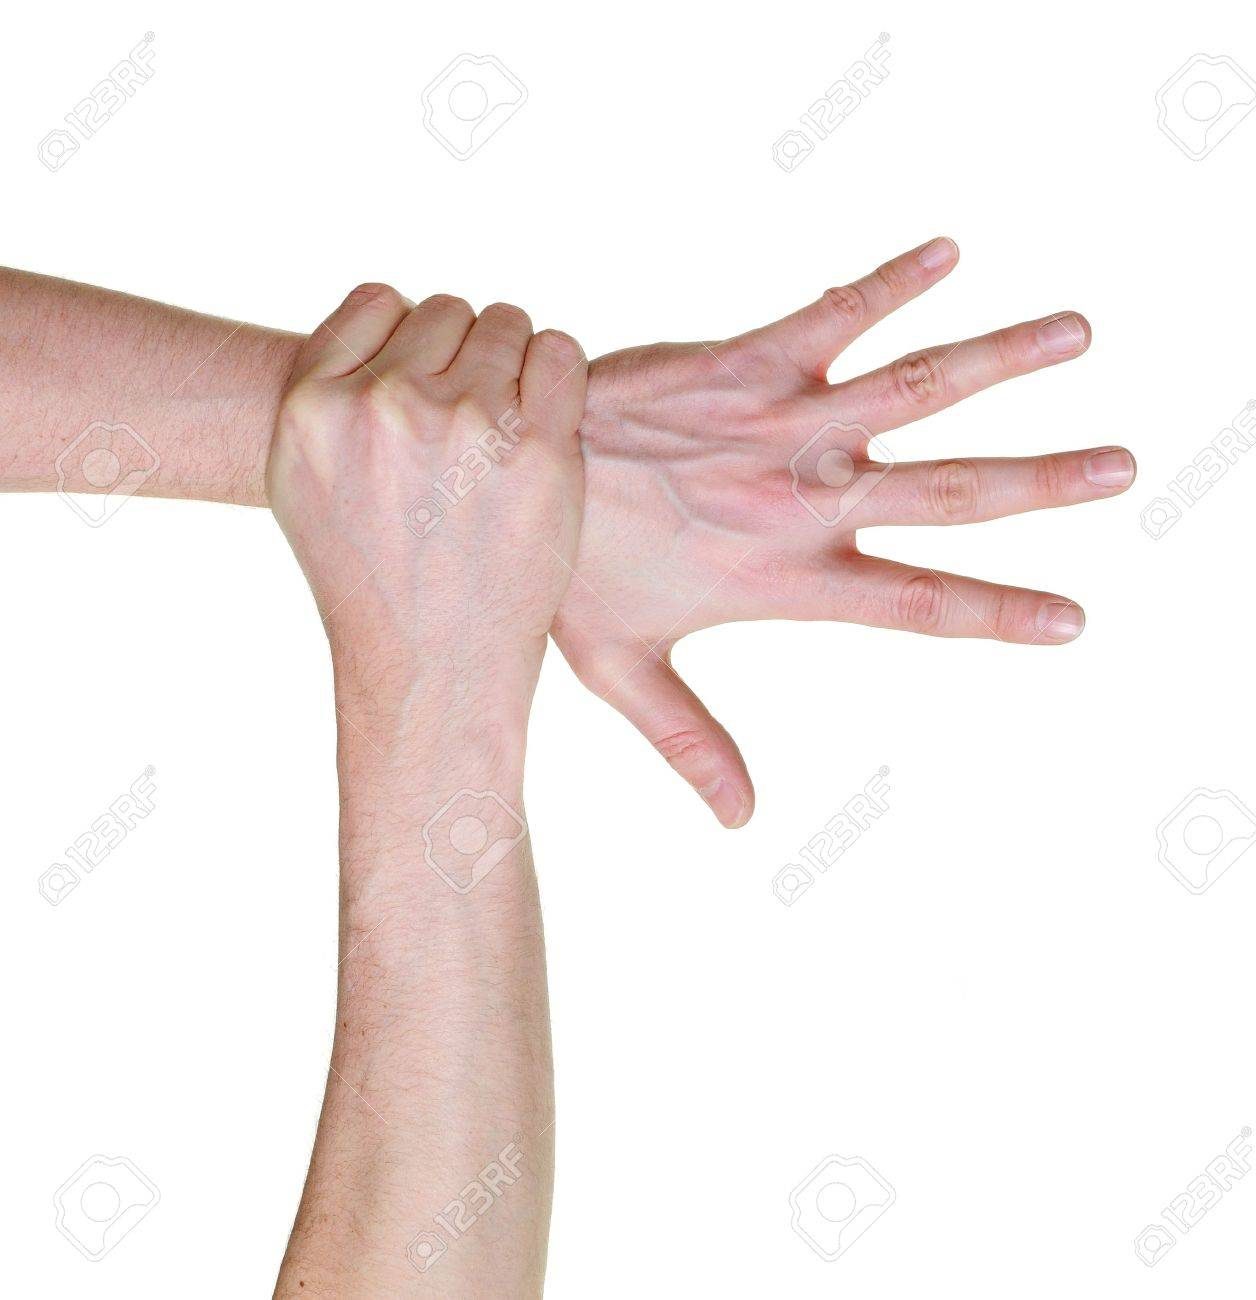 hand caught and grabbed over wrist isolated on white background - 4413147